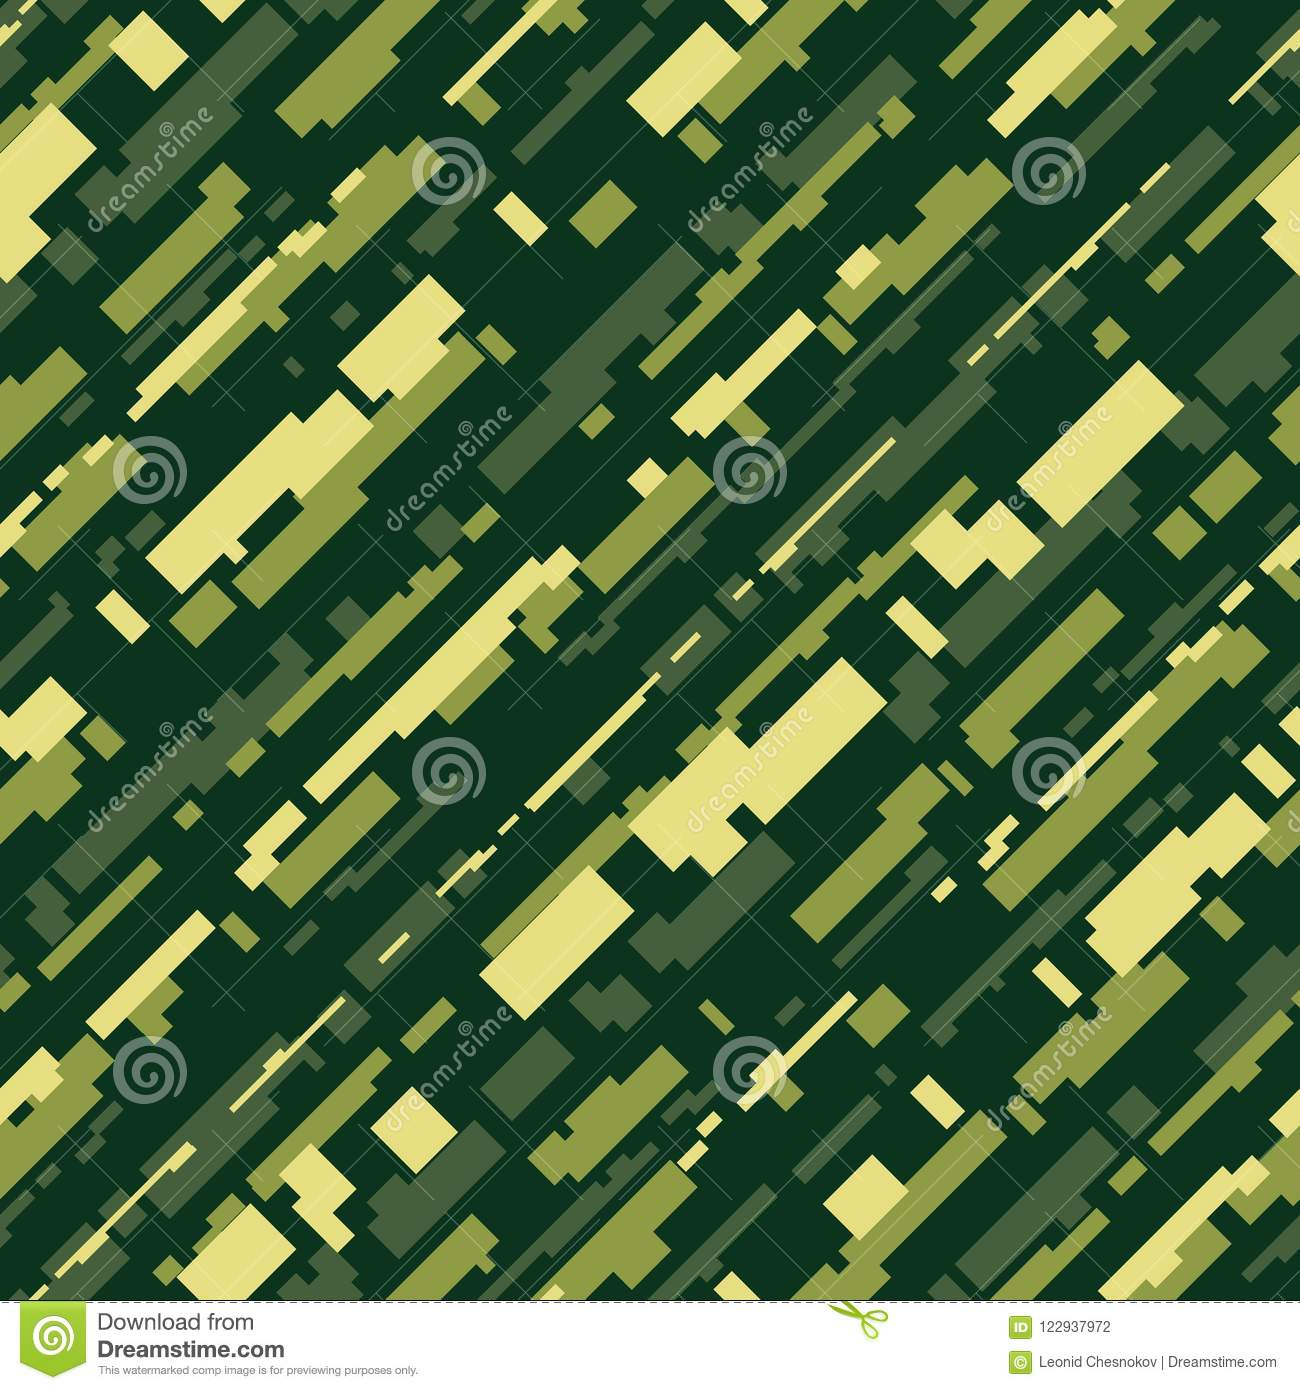 Futuristic Camouflage Vector Seamless Pattern Stock Vector